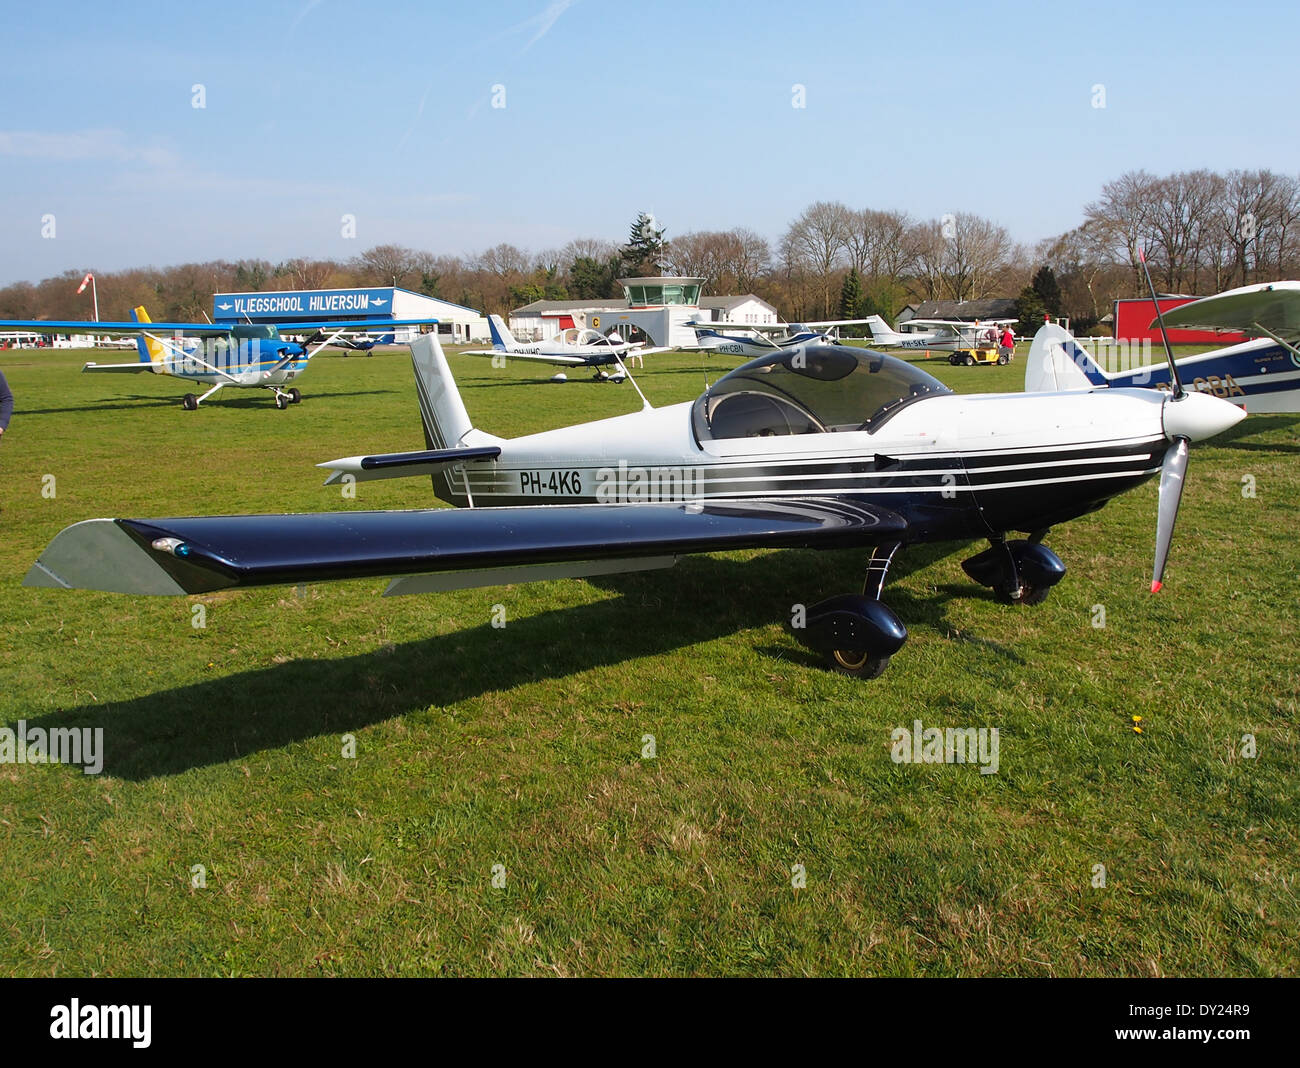 PH-4K6, Czech AC Wor, CH 601 XL at Hilversum Airport (ICAO EHHV), photo3 - Stock Image